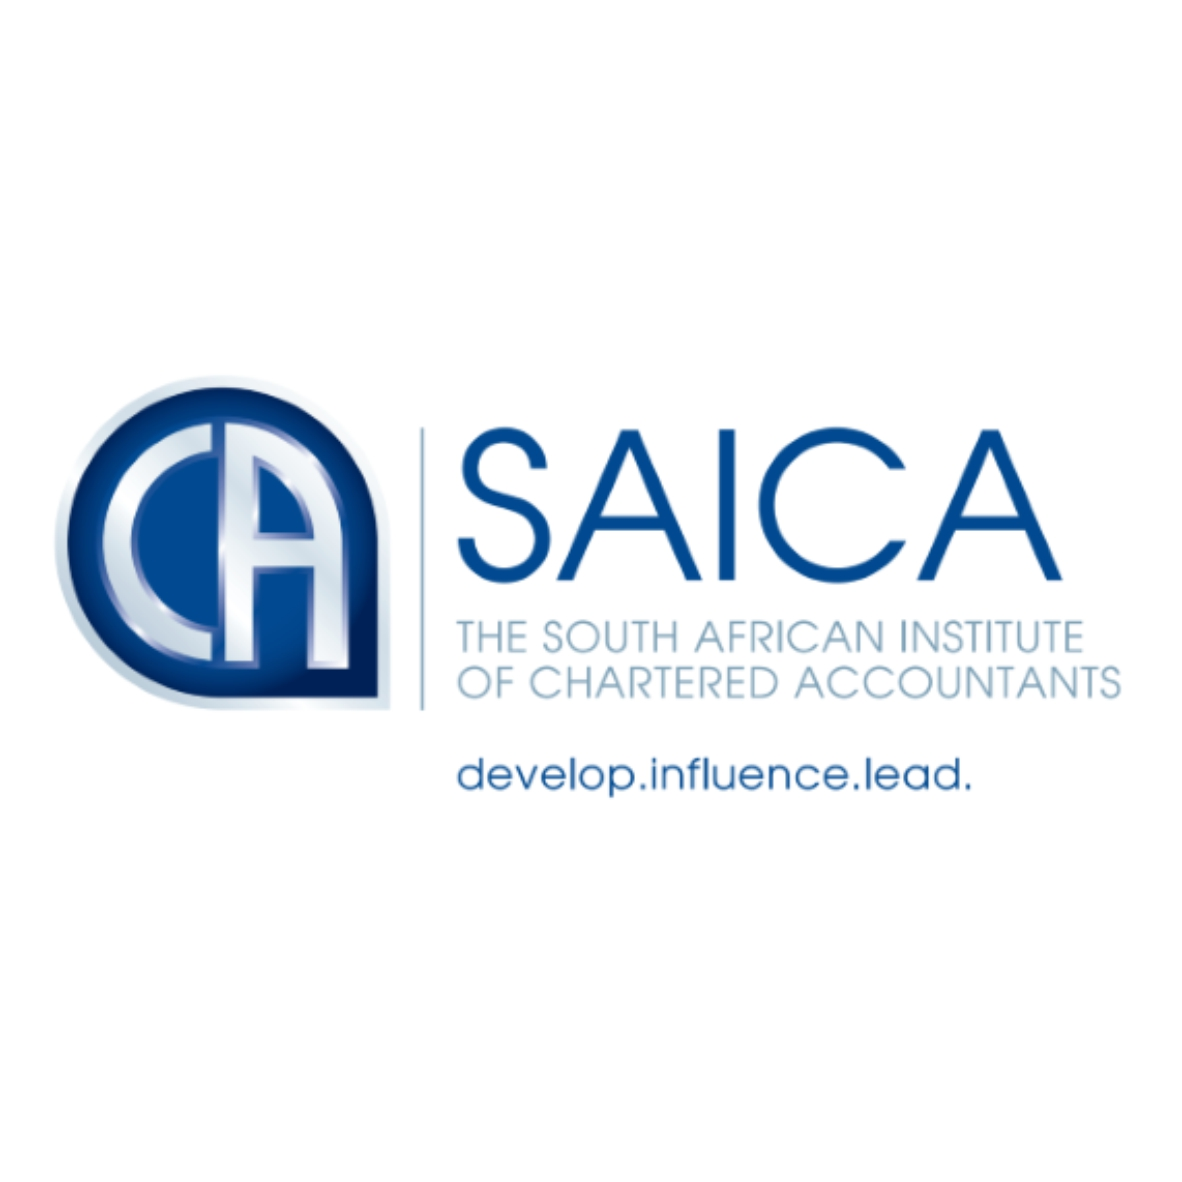 https://fidentis.co.za/wp-content/uploads/2021/03/saica-logo.jpg